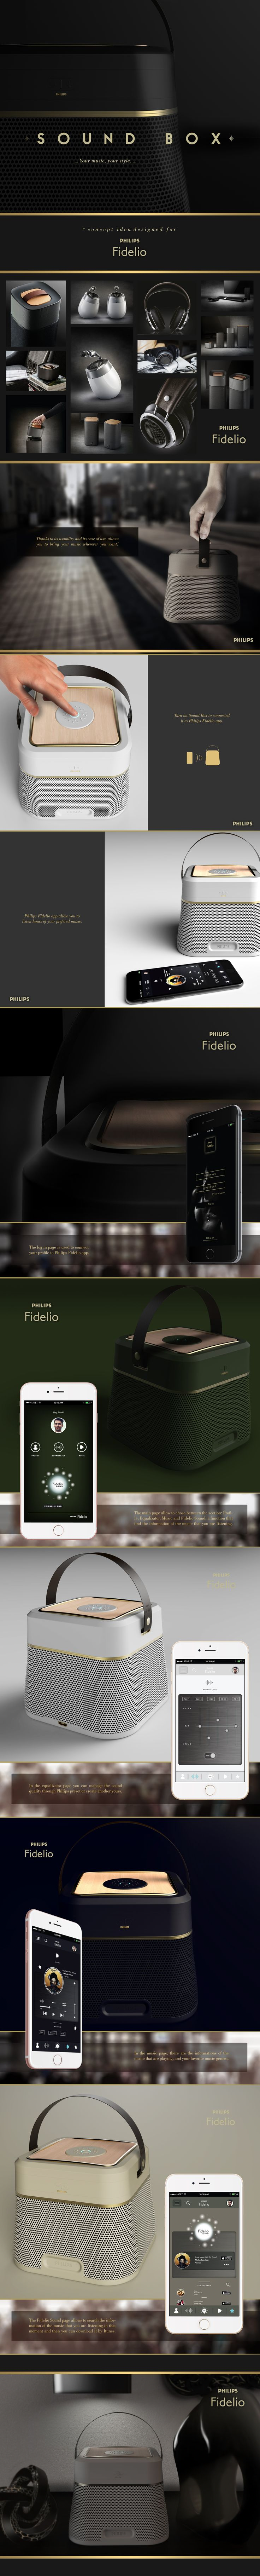 """Consulta este proyecto @Behance: """"Sound Box - a Philips concept about a bluetooth speaker"""" https://www.behance.net/gallery/45888667/Sound-Box-a-Philips-concept-about-a-bluetooth-speaker"""